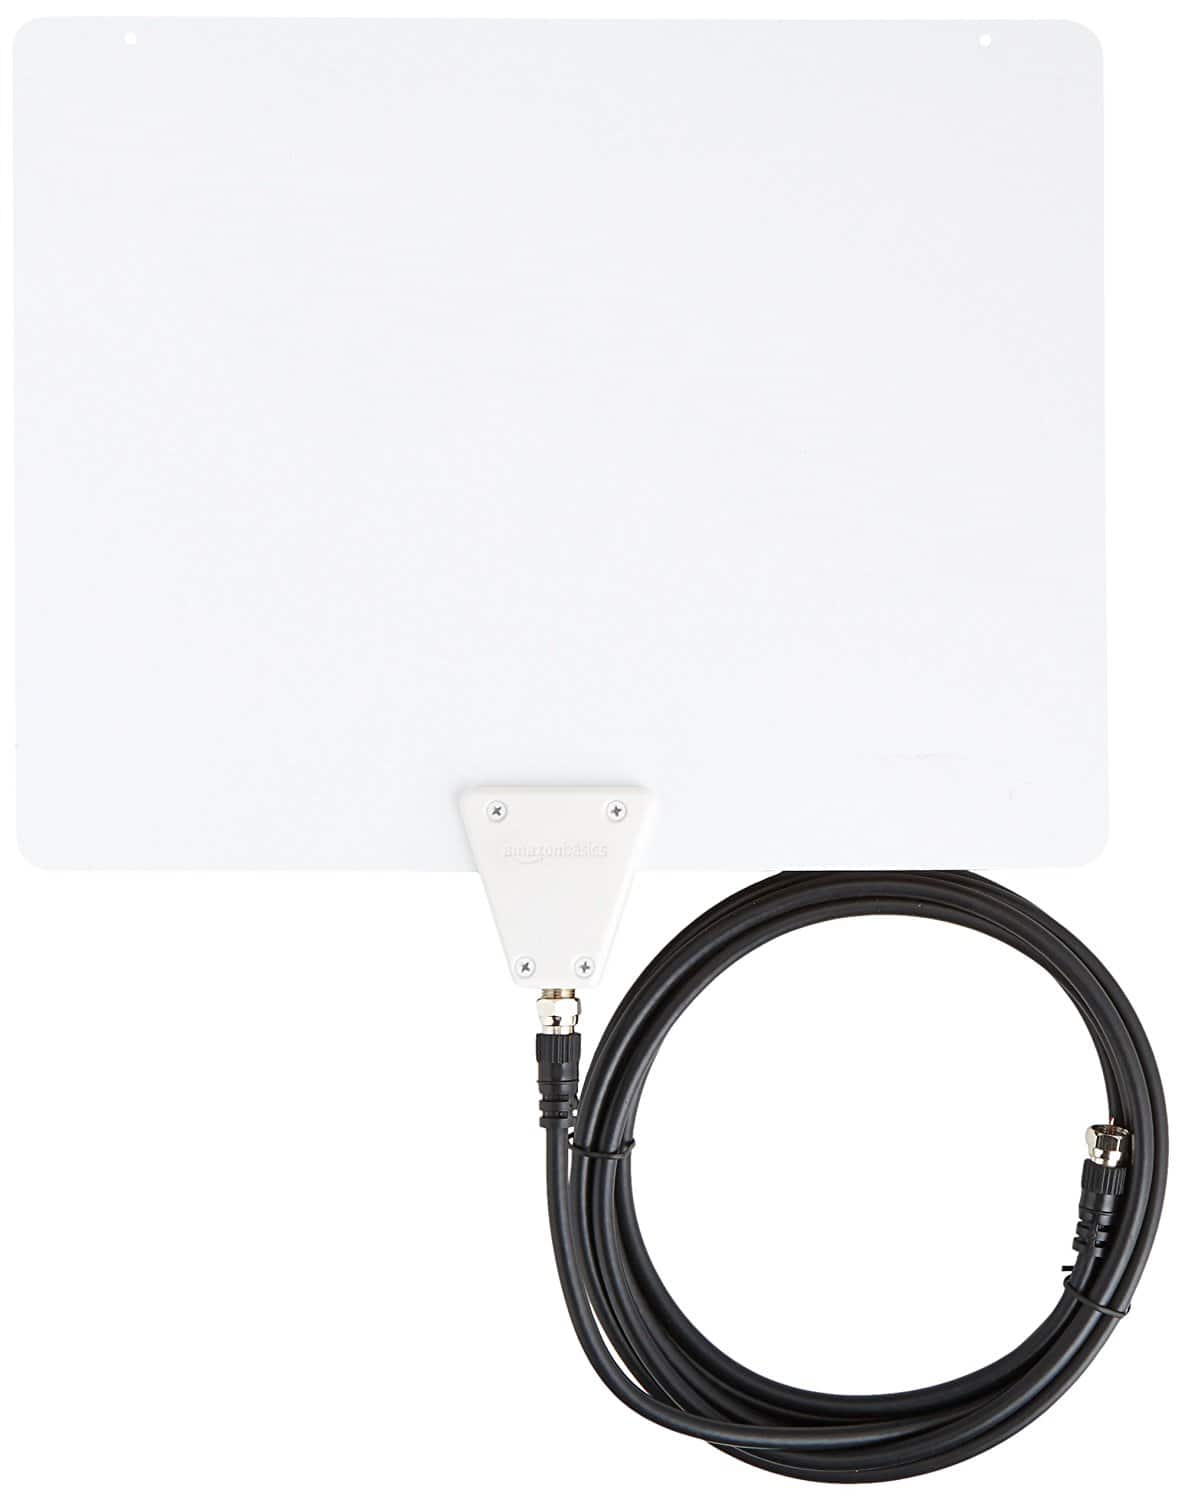 Amazon Warehouse - AmazonBasics Ultra Thin Indoor TV Antenna - 35 Mile Range - from $5.82